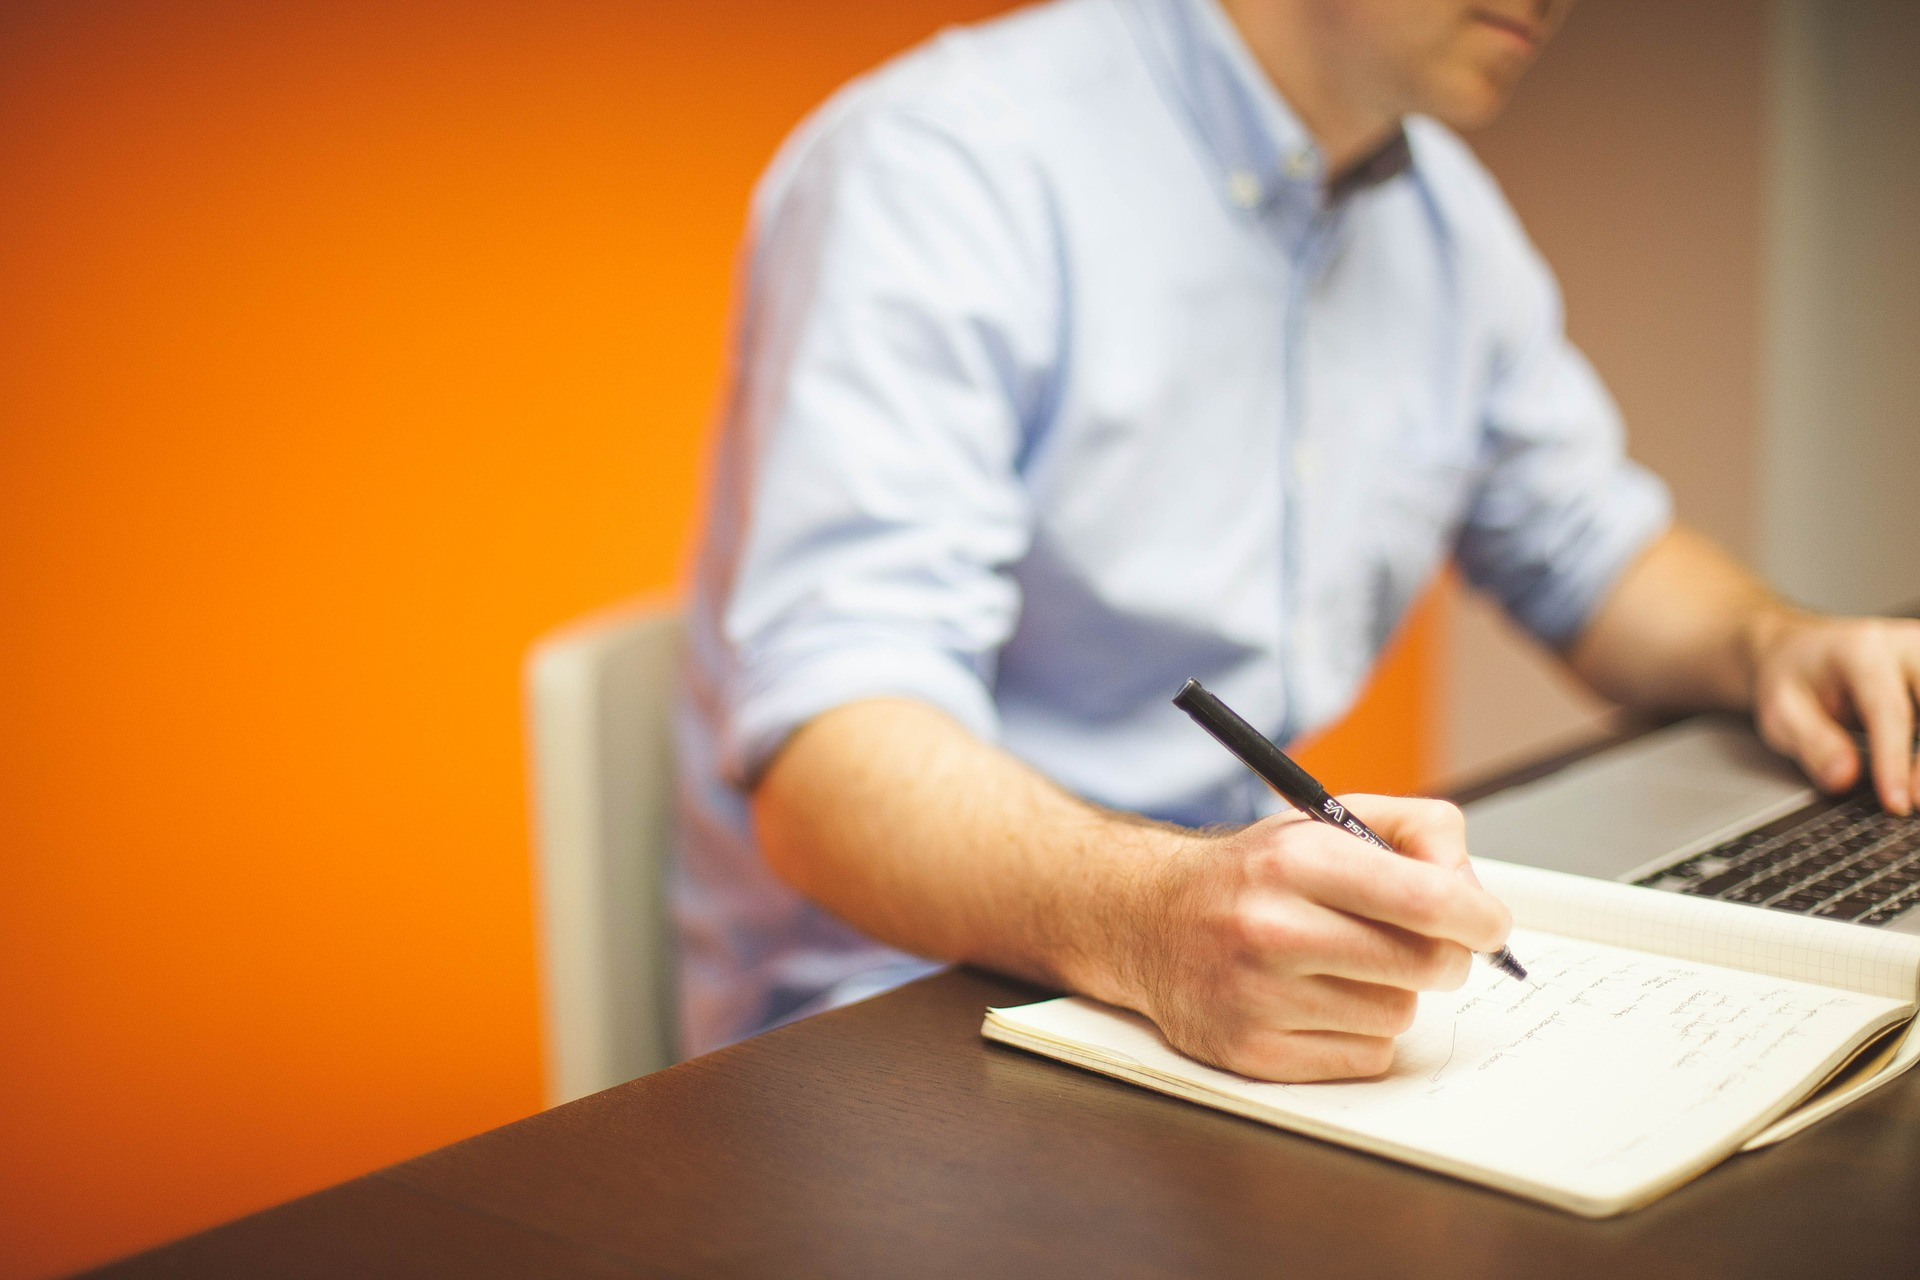 This guy in the stock photo is being agile. See how he's writing AND typing at the same time?!